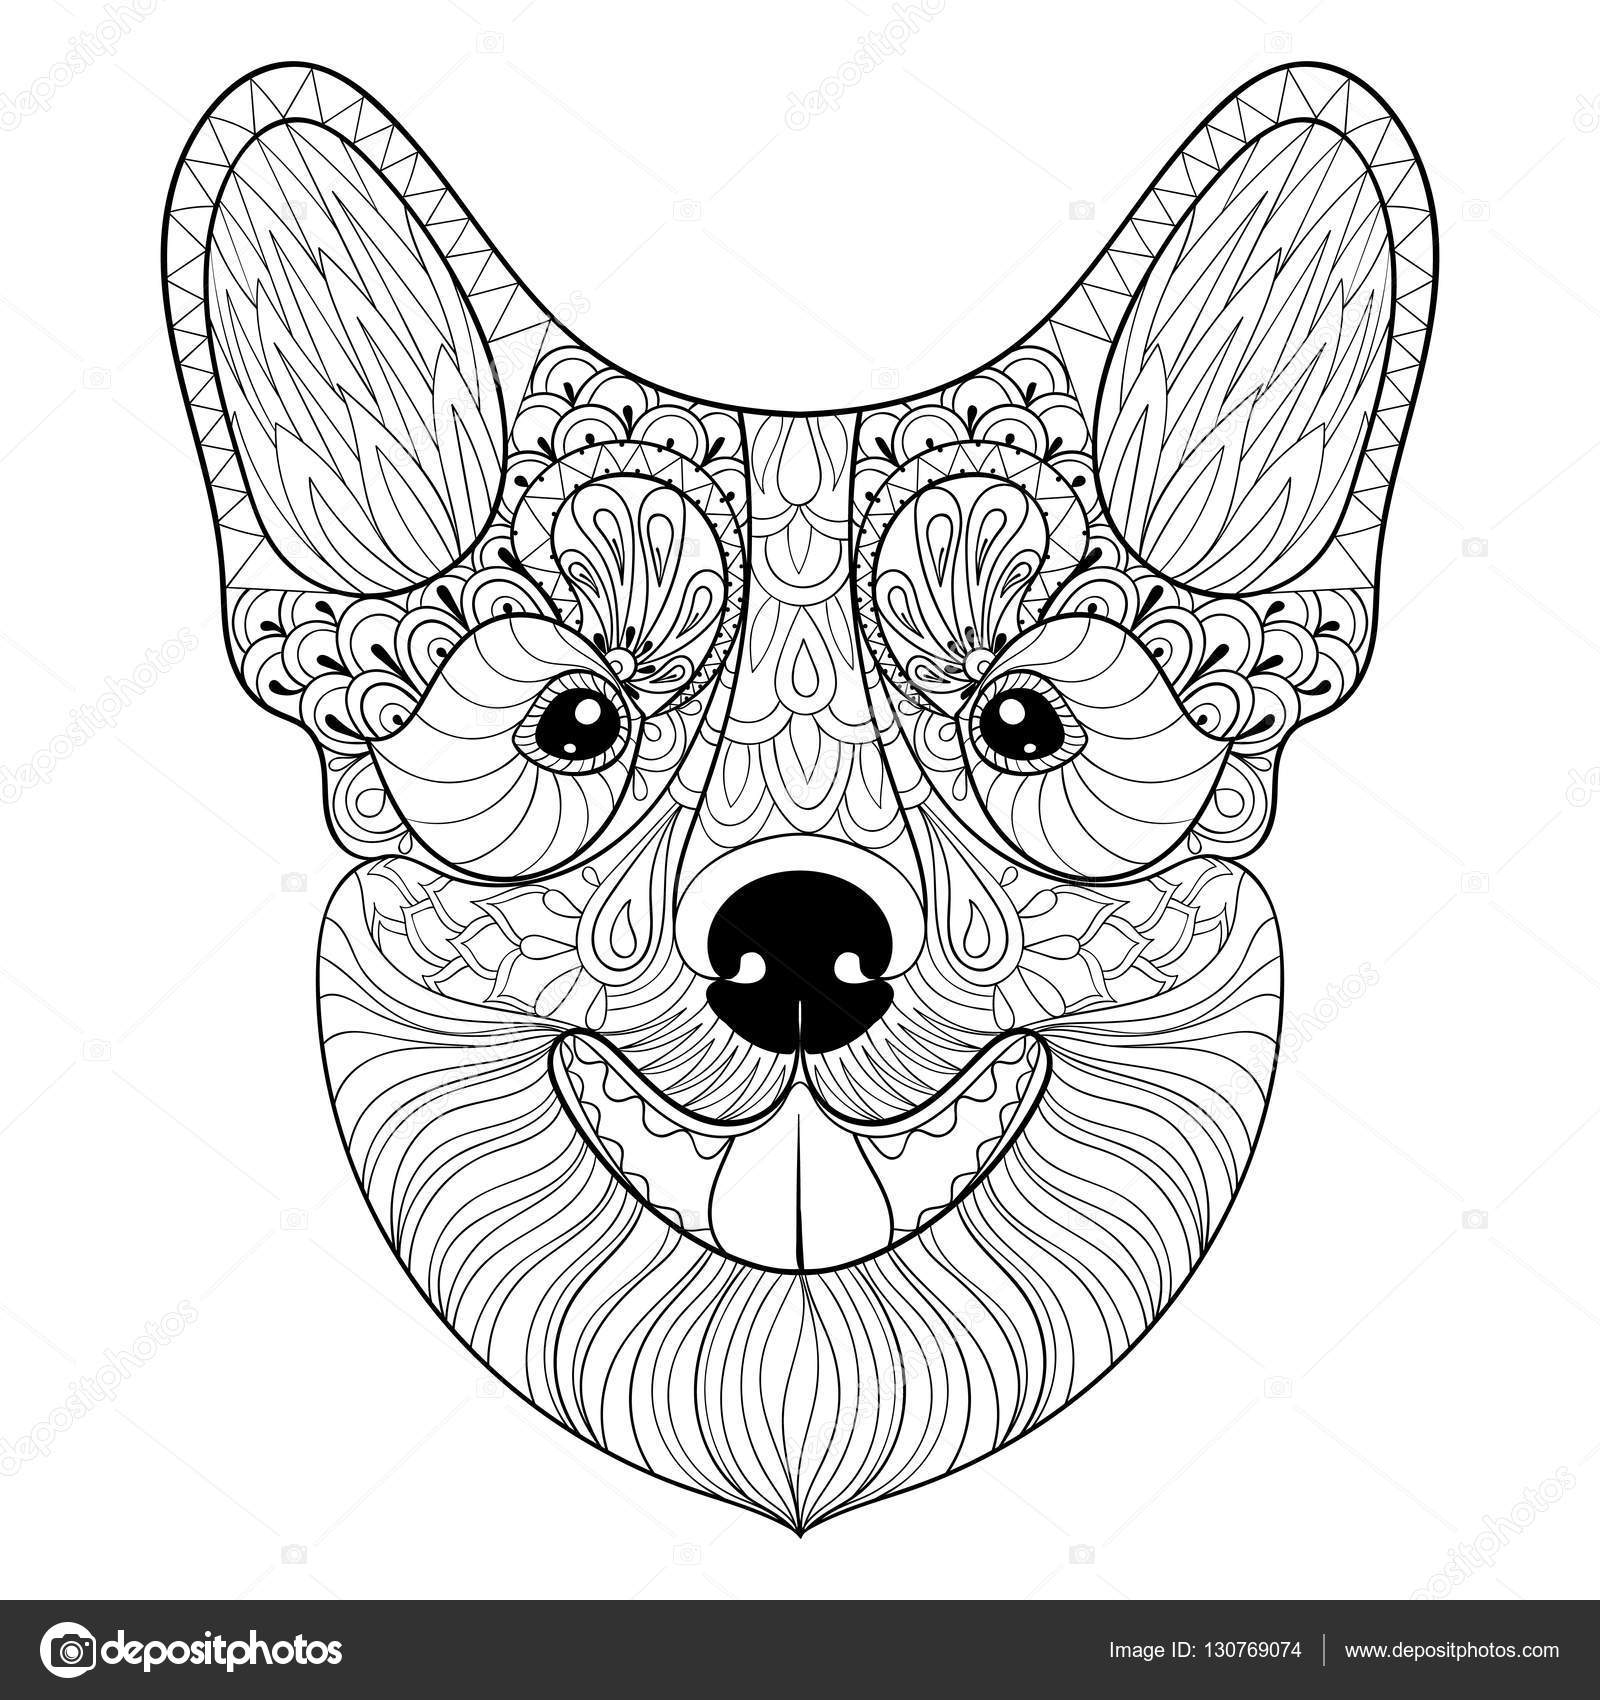 - Corgi Coloring Pages Zentangle Dog Face In Monochrome Doodle